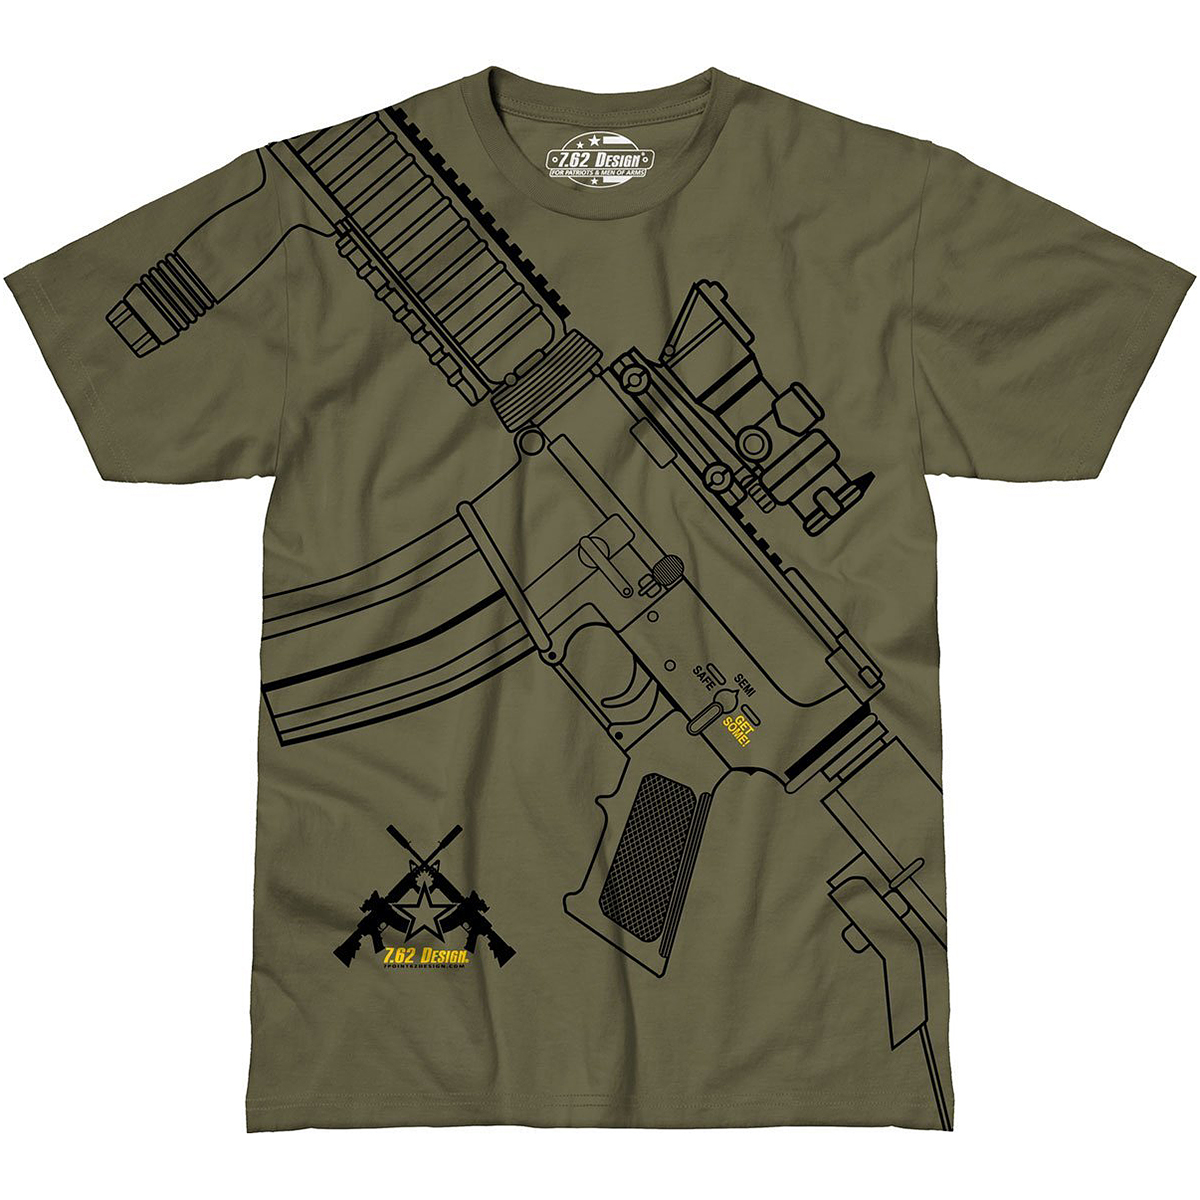 Design get some mens t shirt army combat graphic for Army design shirts online